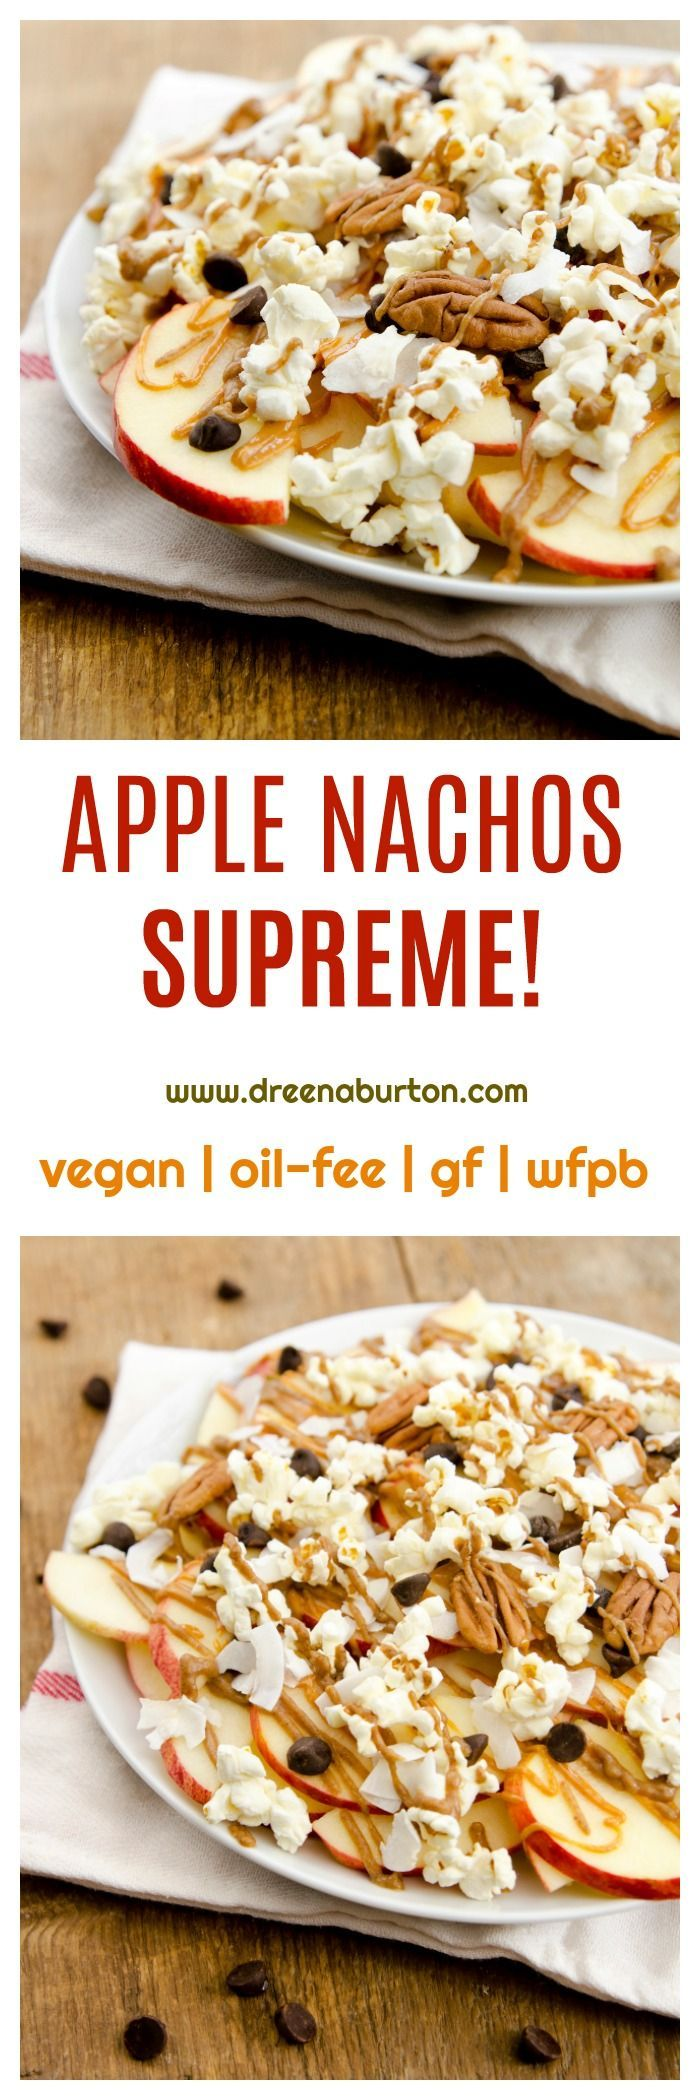 Apple Nachos SUPREME! http://healthyquickly.com/7-healthy-snacks-for-weightloss-easy-delicious/